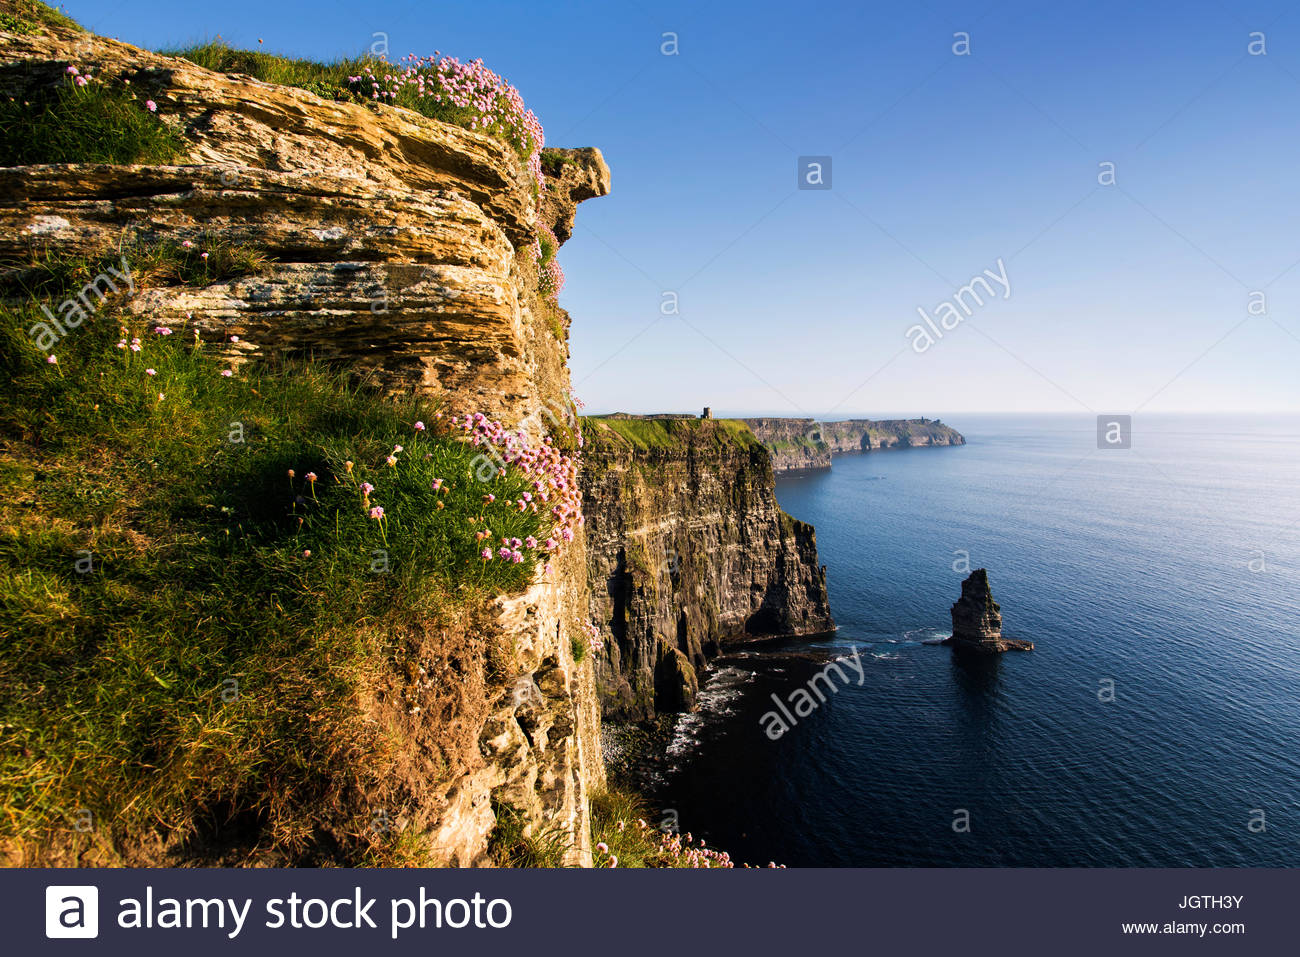 Sunlight shines on the Cliffs of Moher. Stock Photo